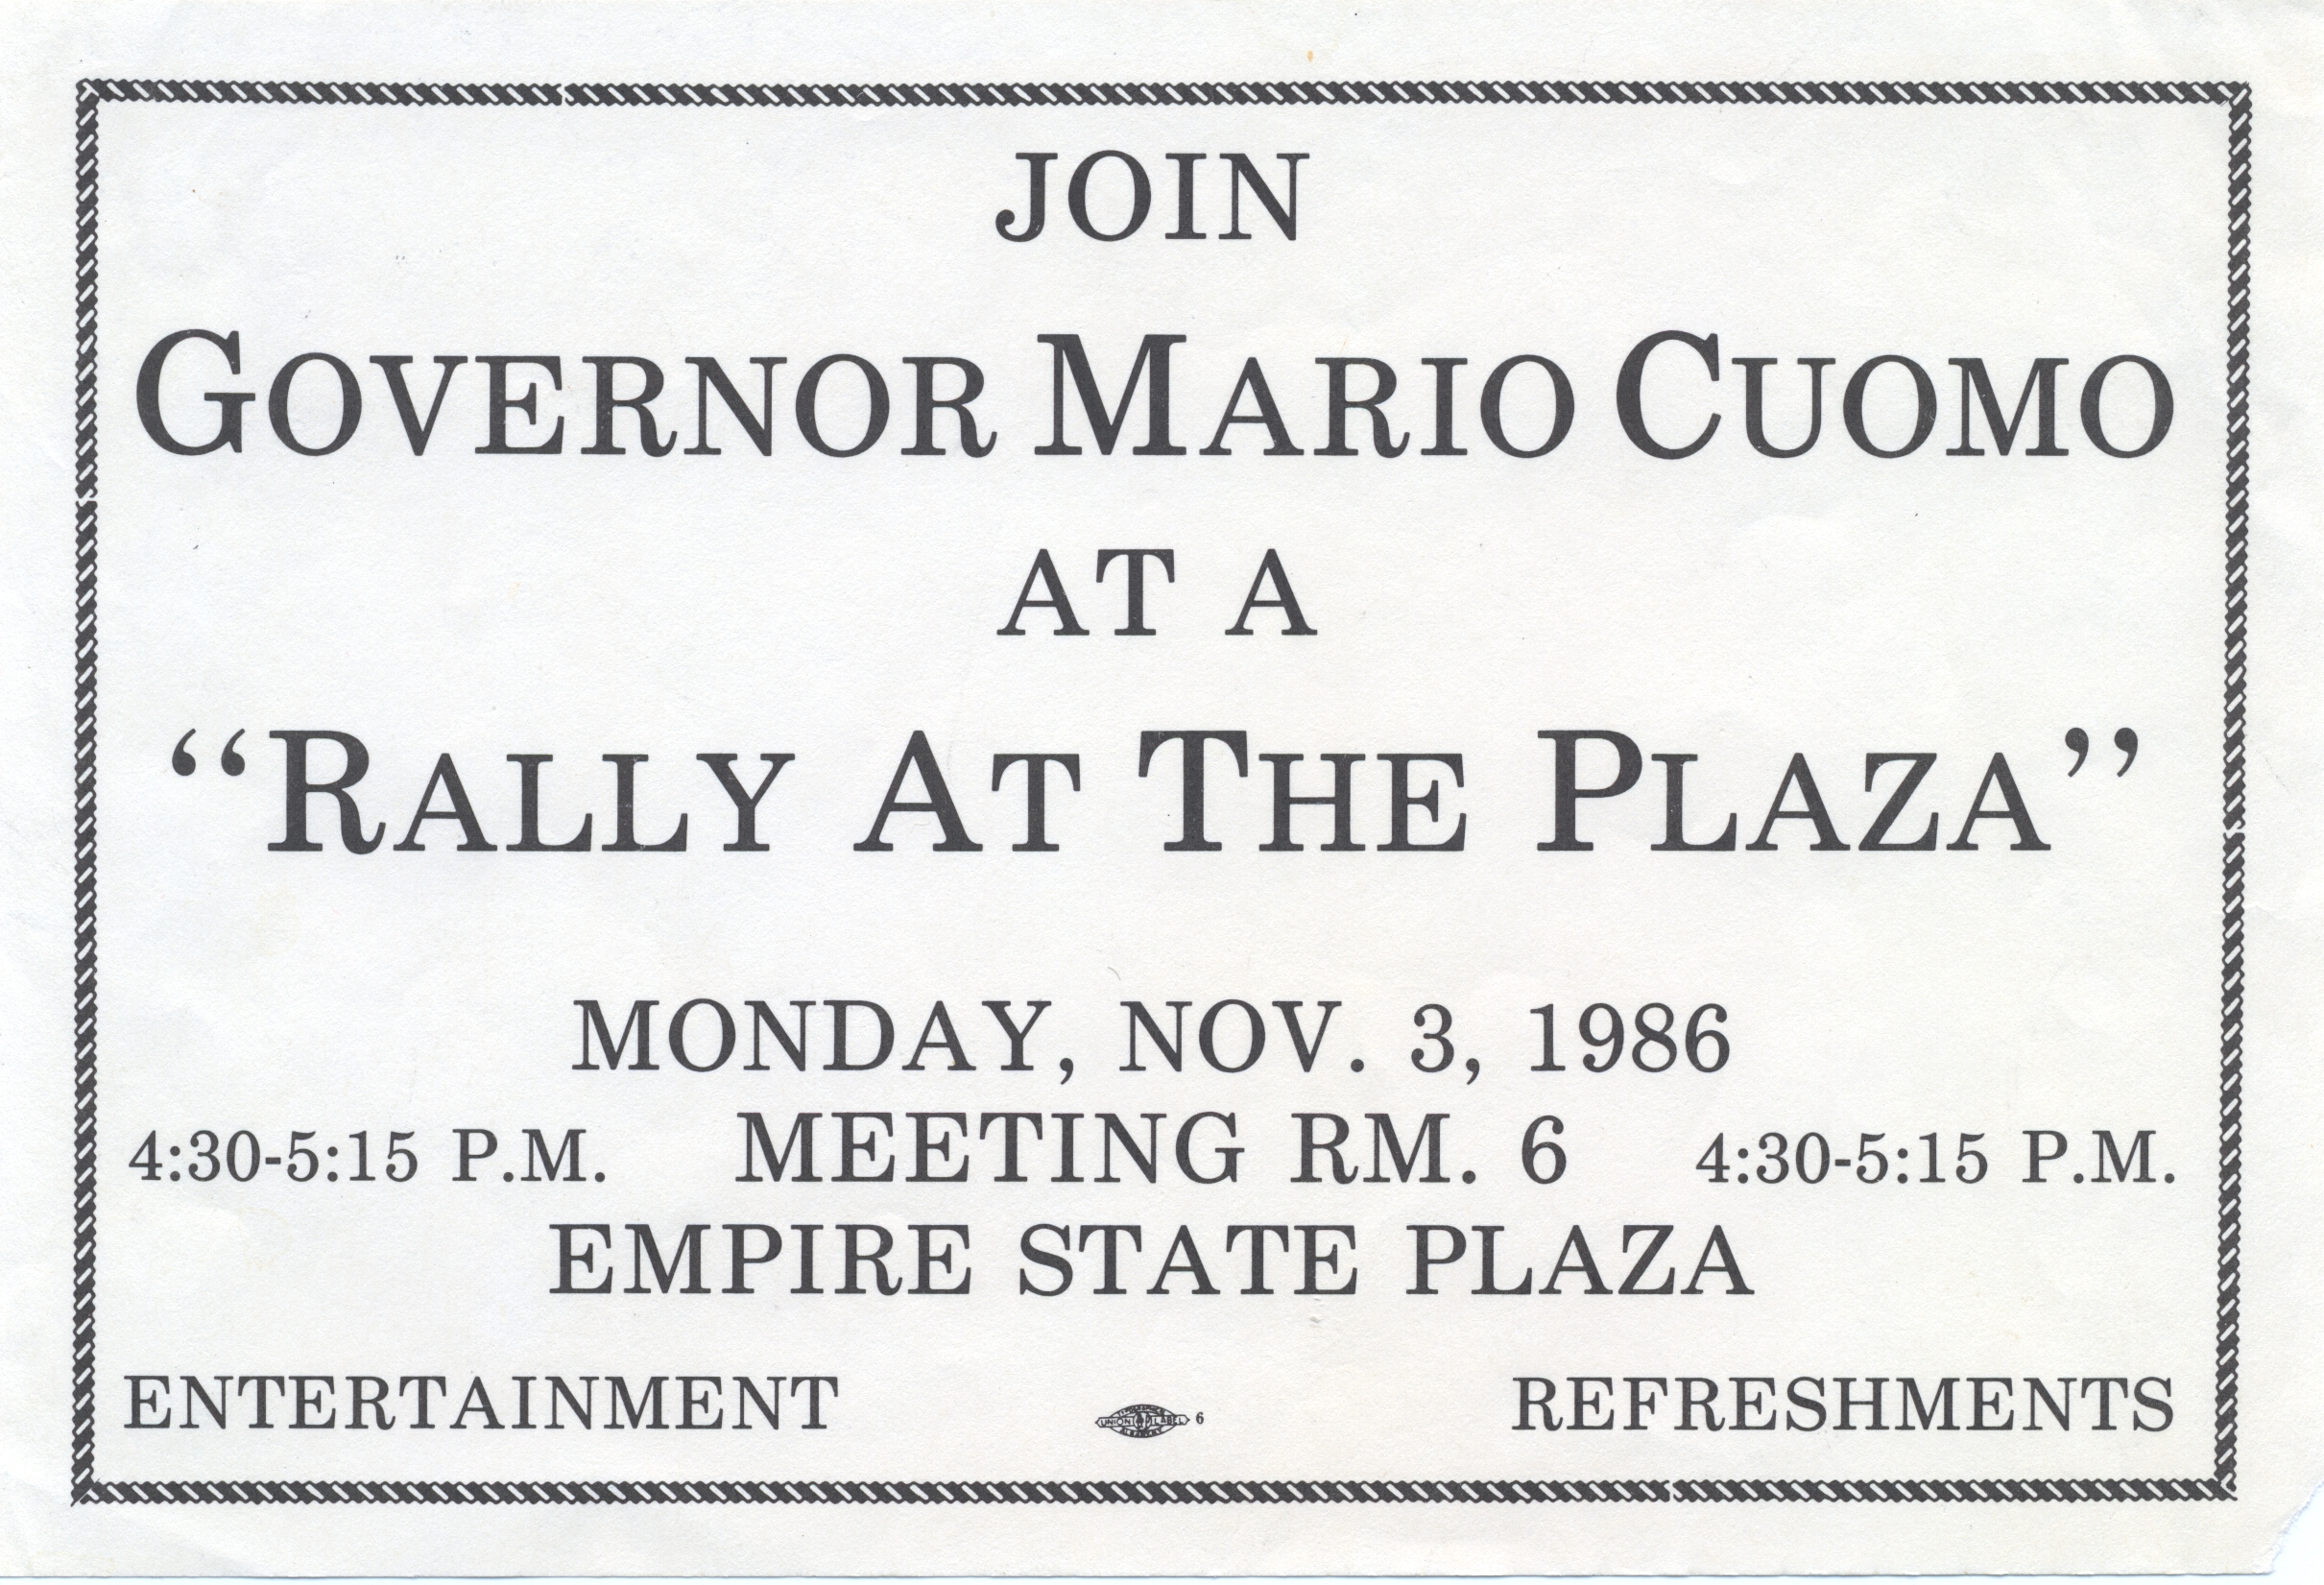 Governor Mario Cuomo 1986 Rally at the Plaza